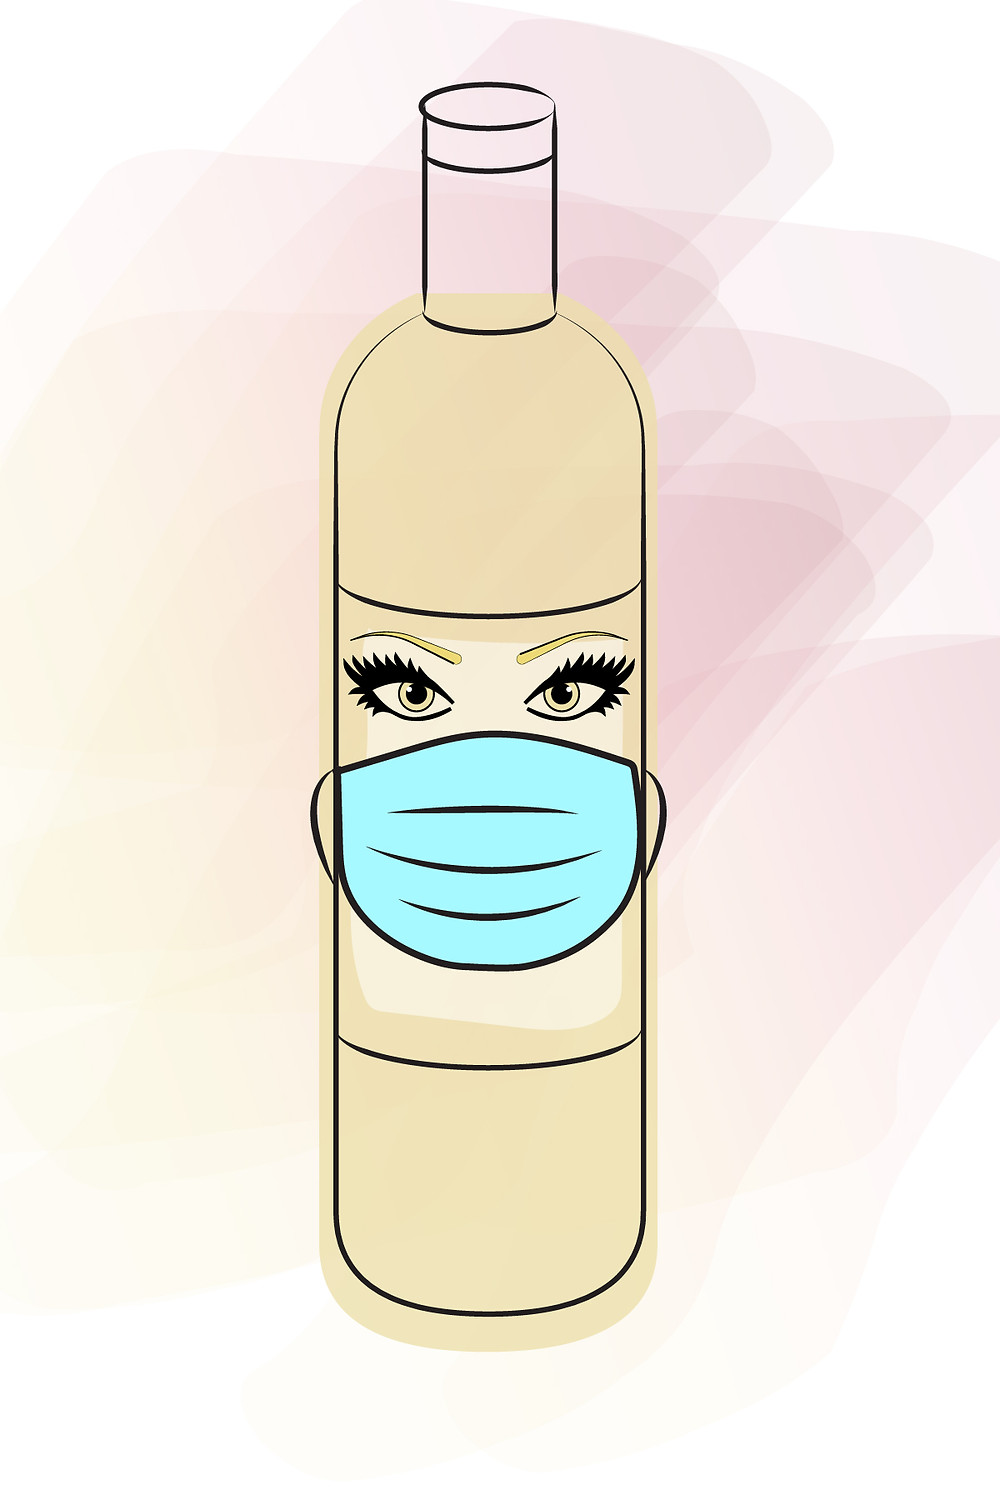 Wine bottle wearing a face mask image by Blonde Tasting